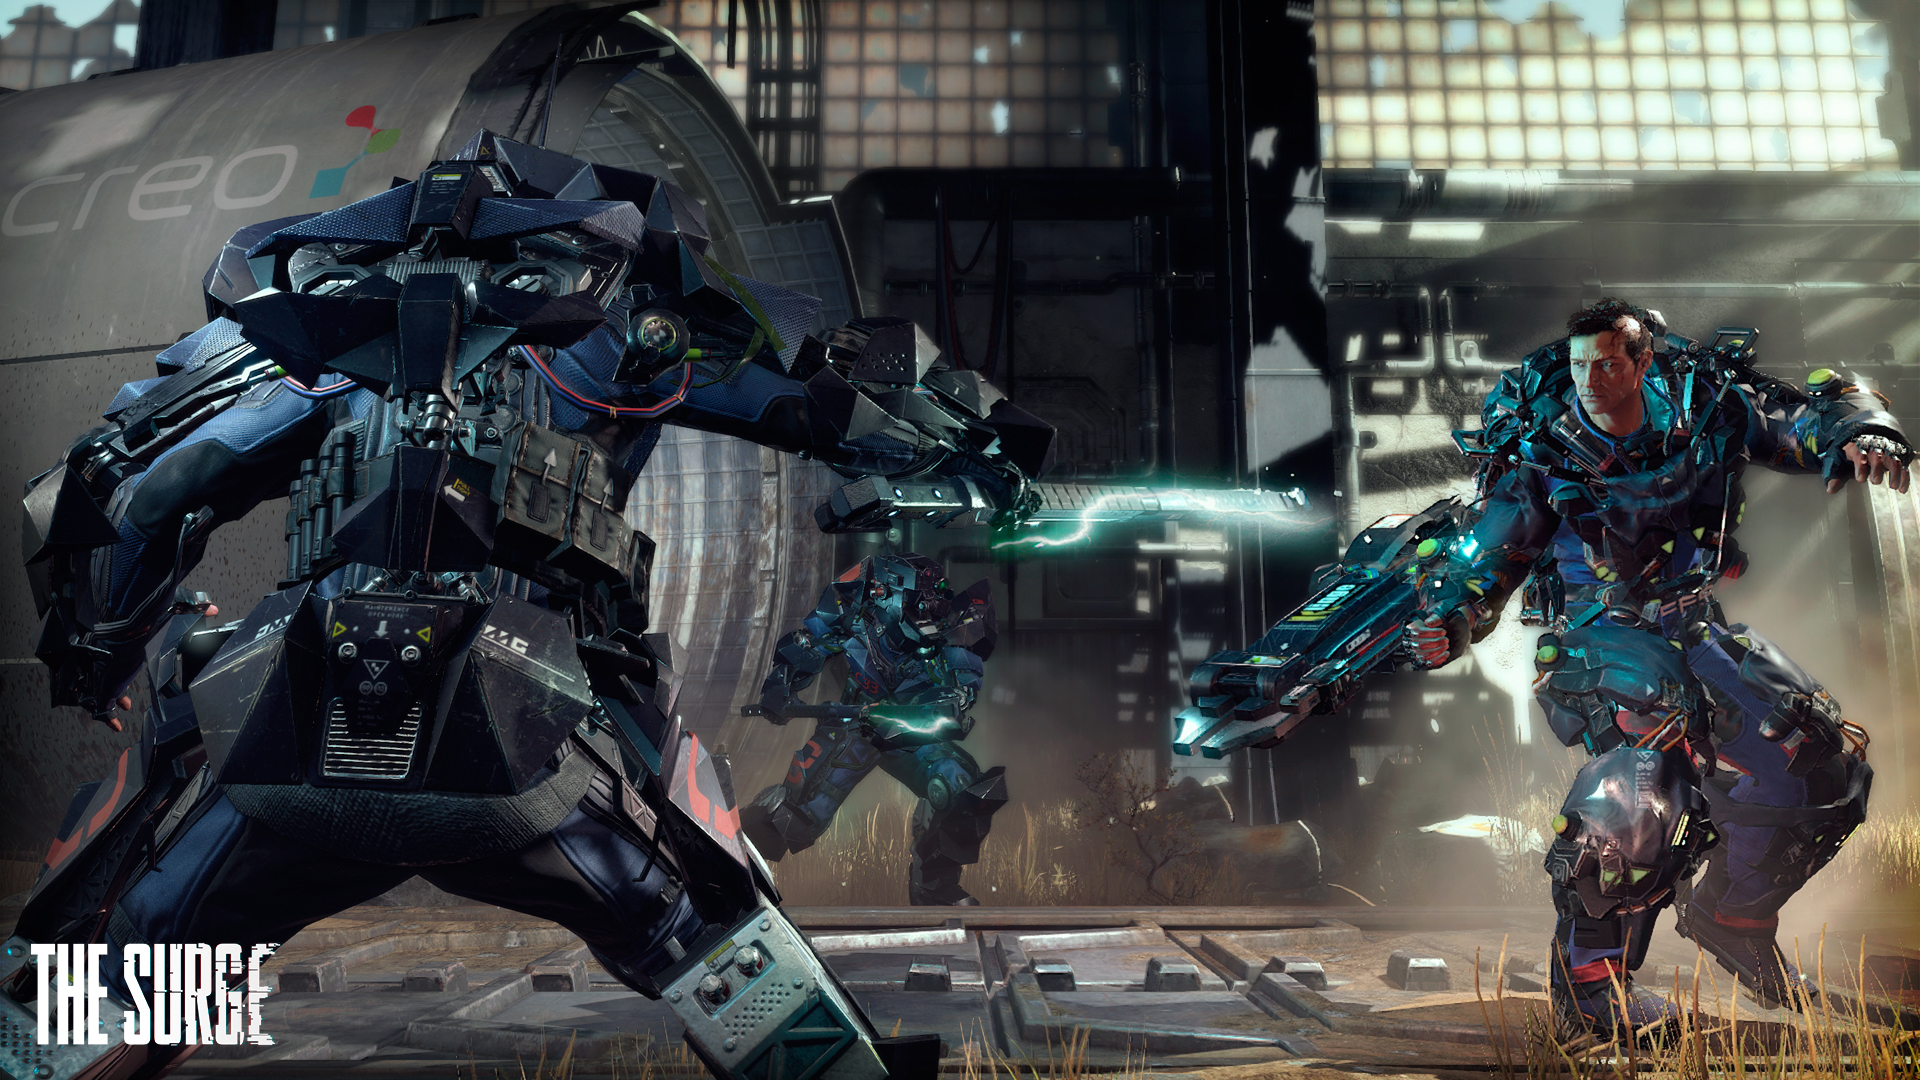 The Surge releases its 'Stronger, Faster, Tougher' trailer